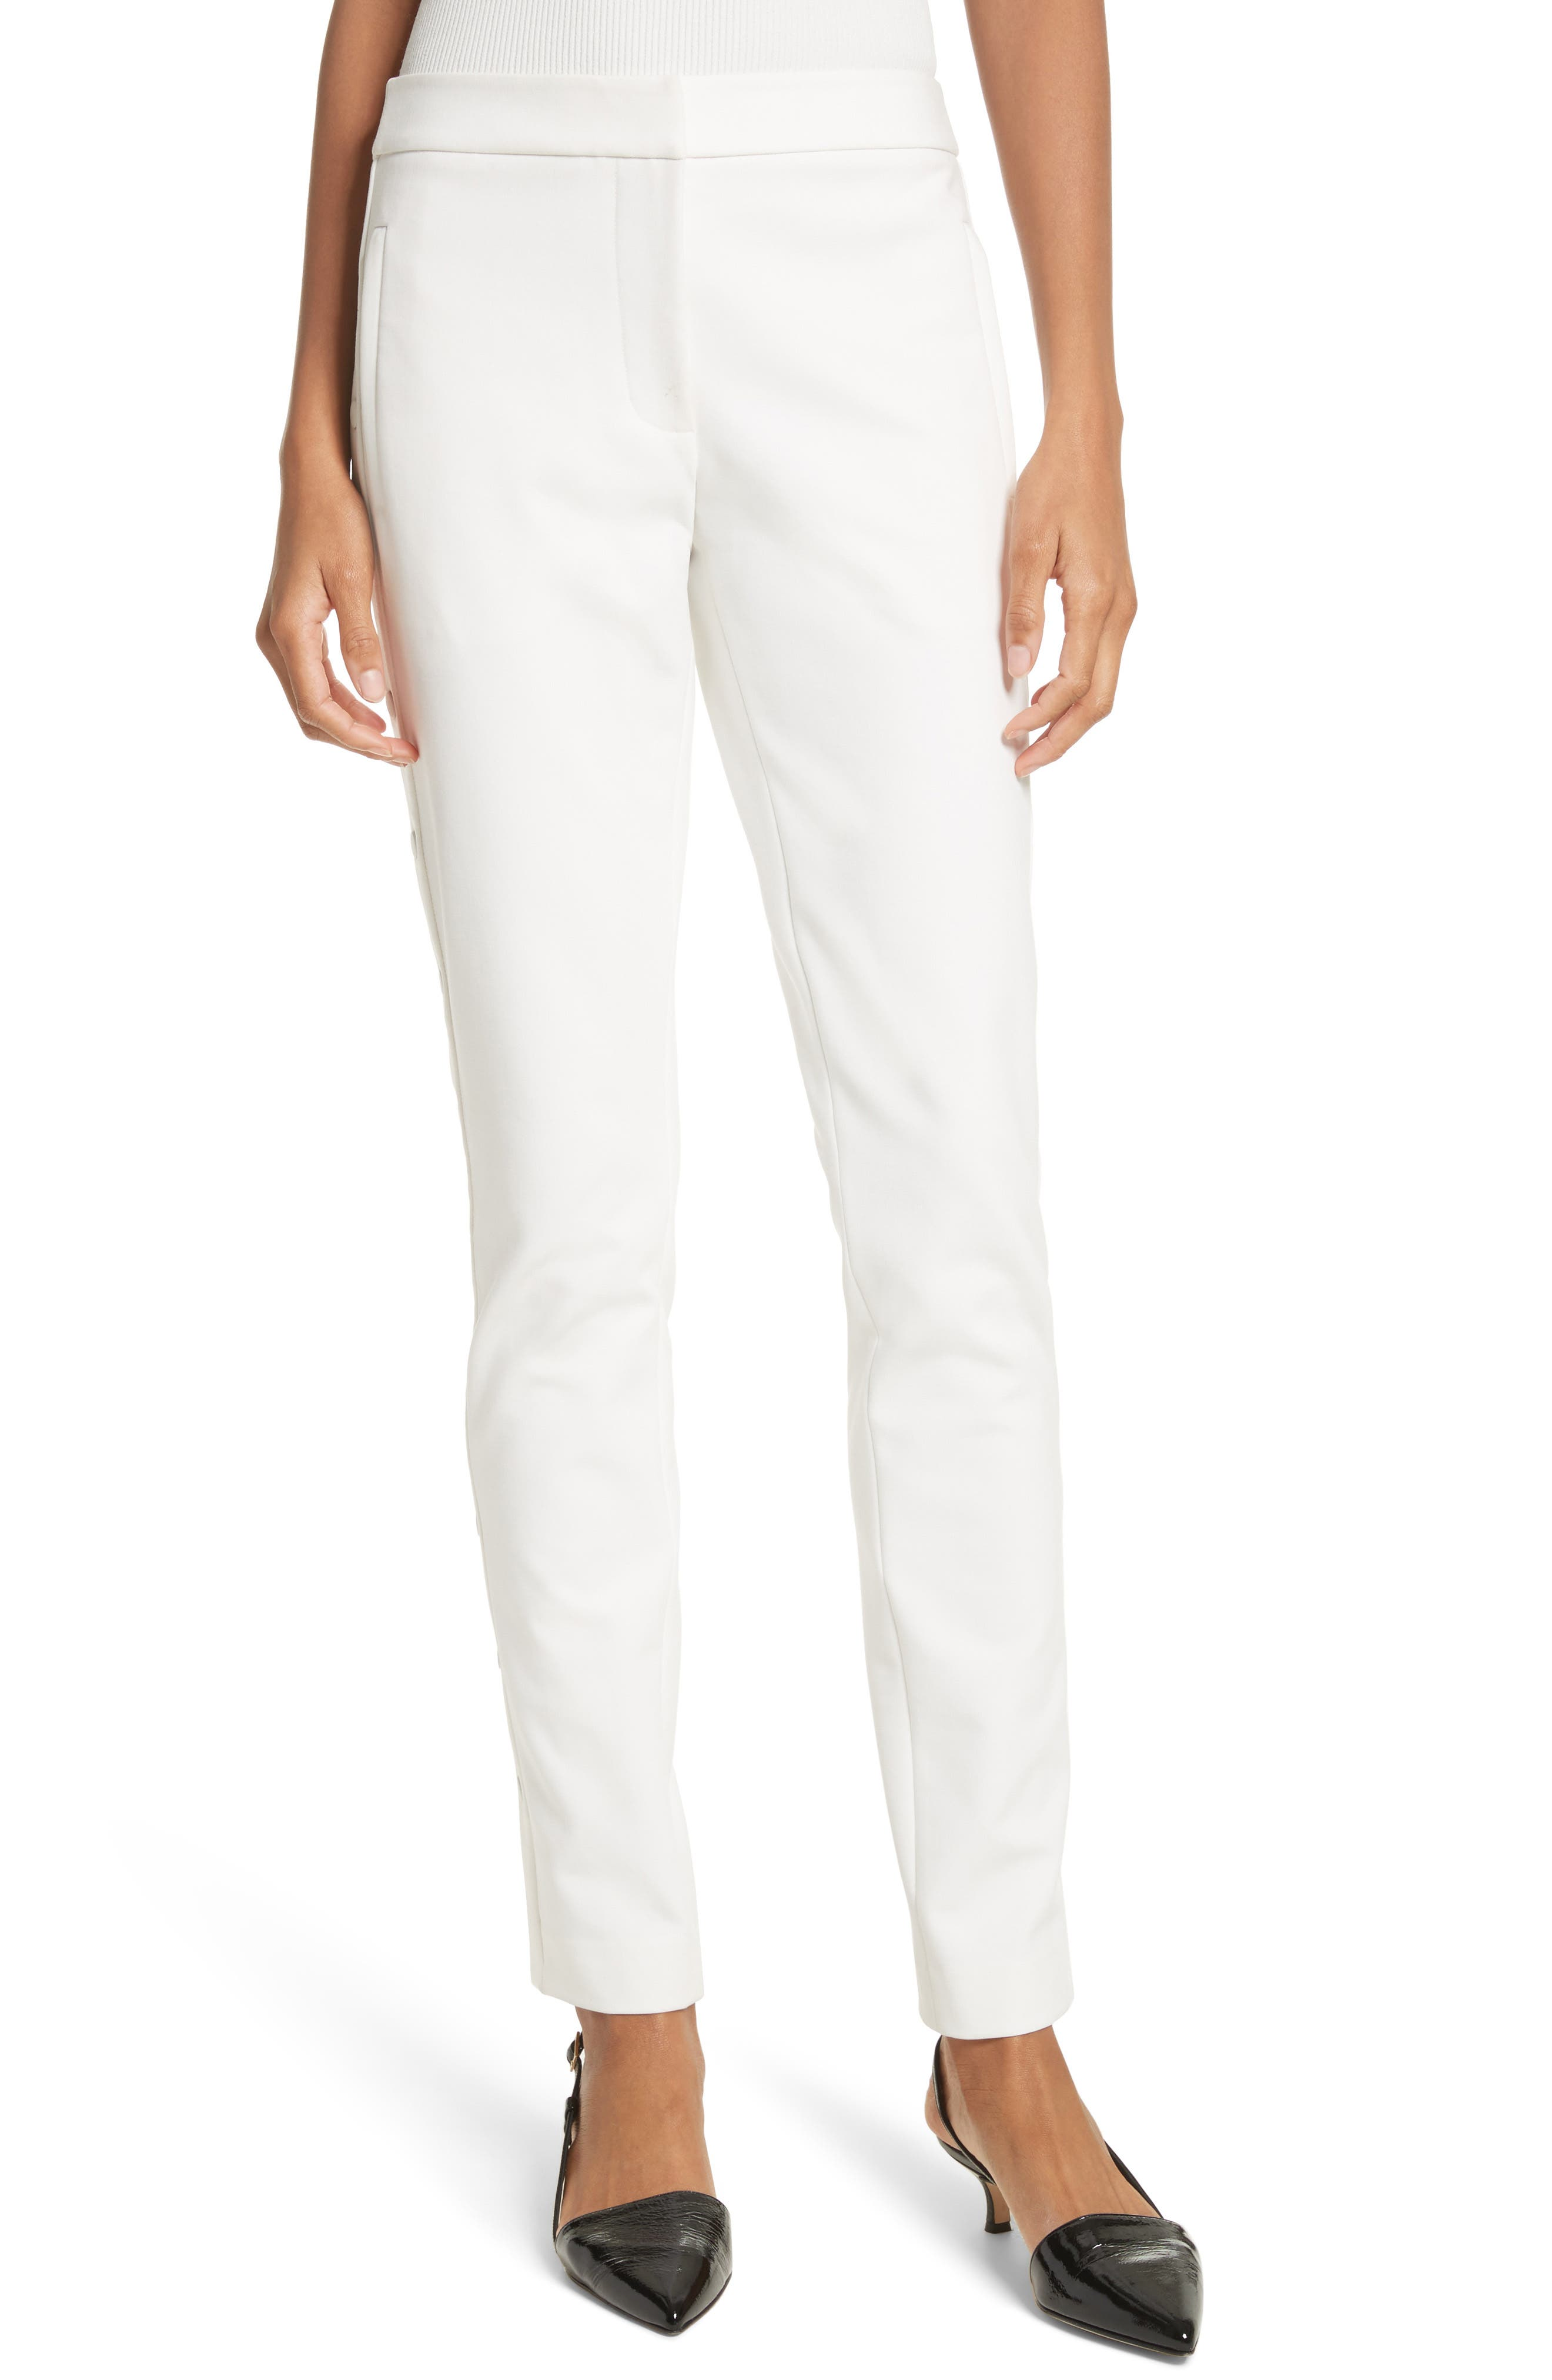 Anson Snap Side Skinny Pants,                         Main,                         color, Ivory